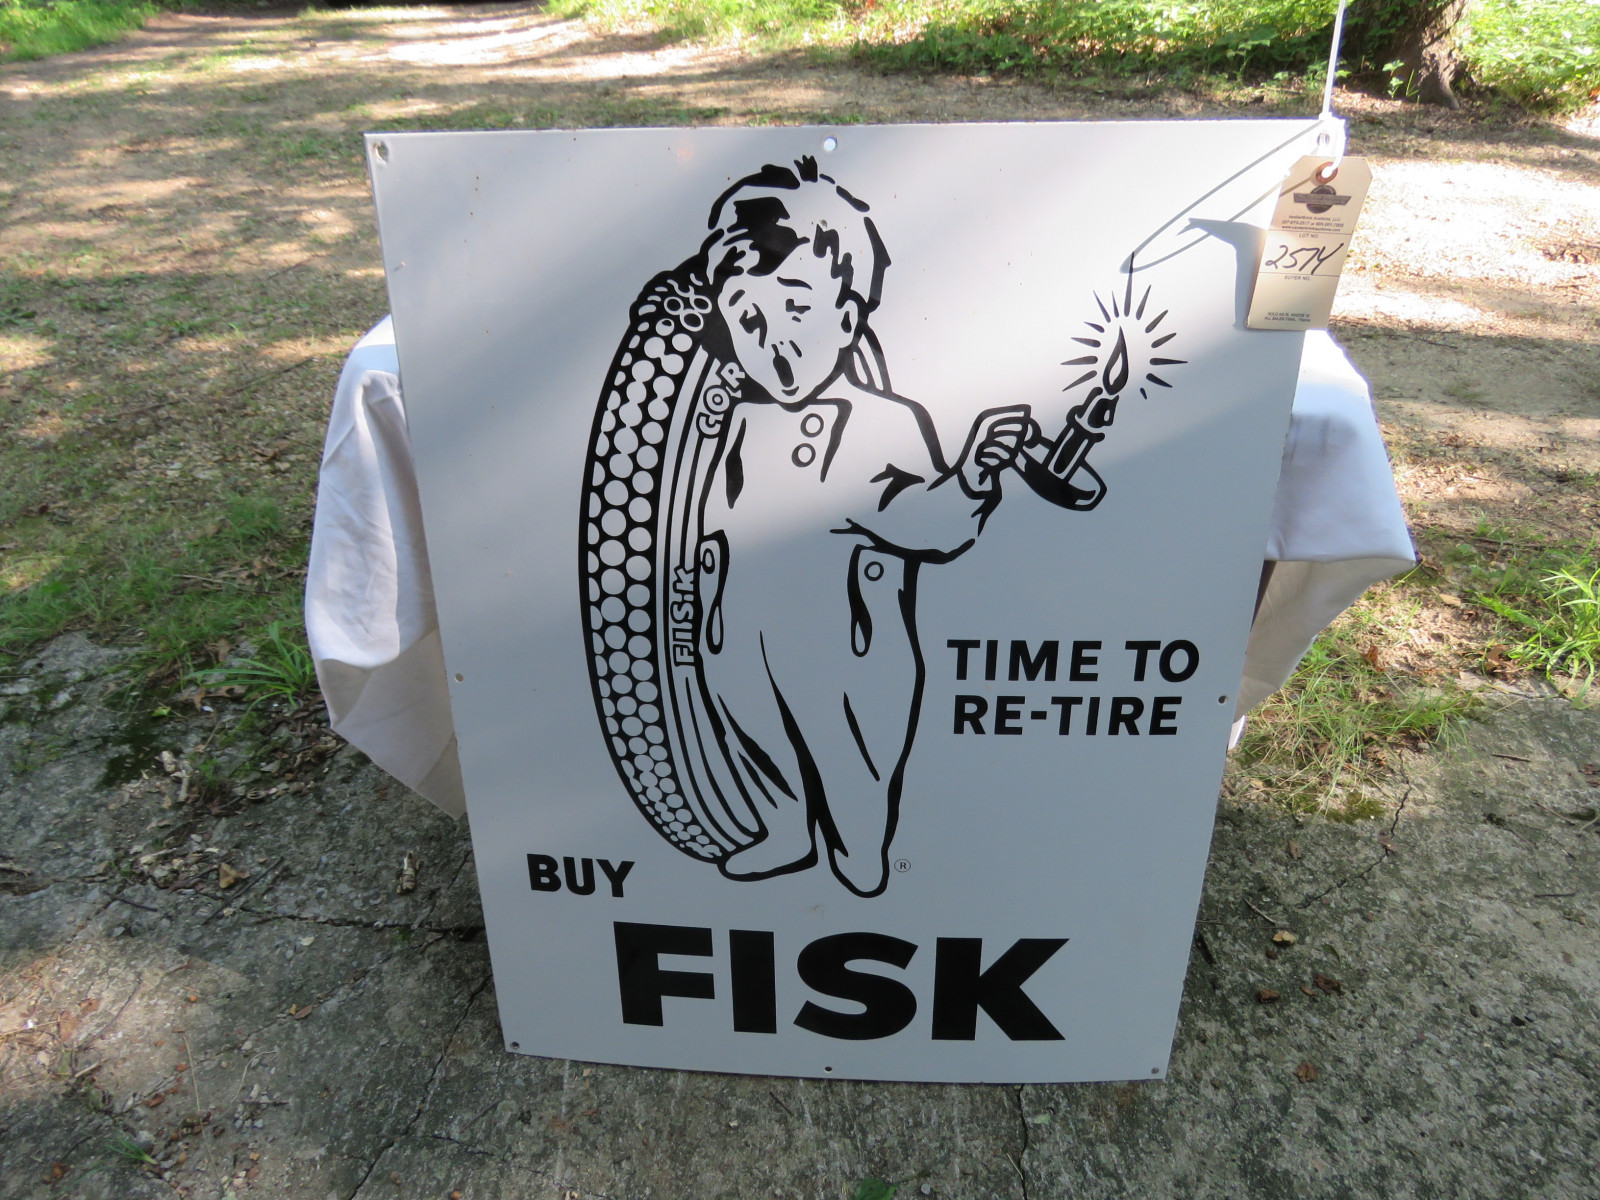 RARE NOS Fisk Tires SS Porcelain Sign 29X36 inches - Image 2